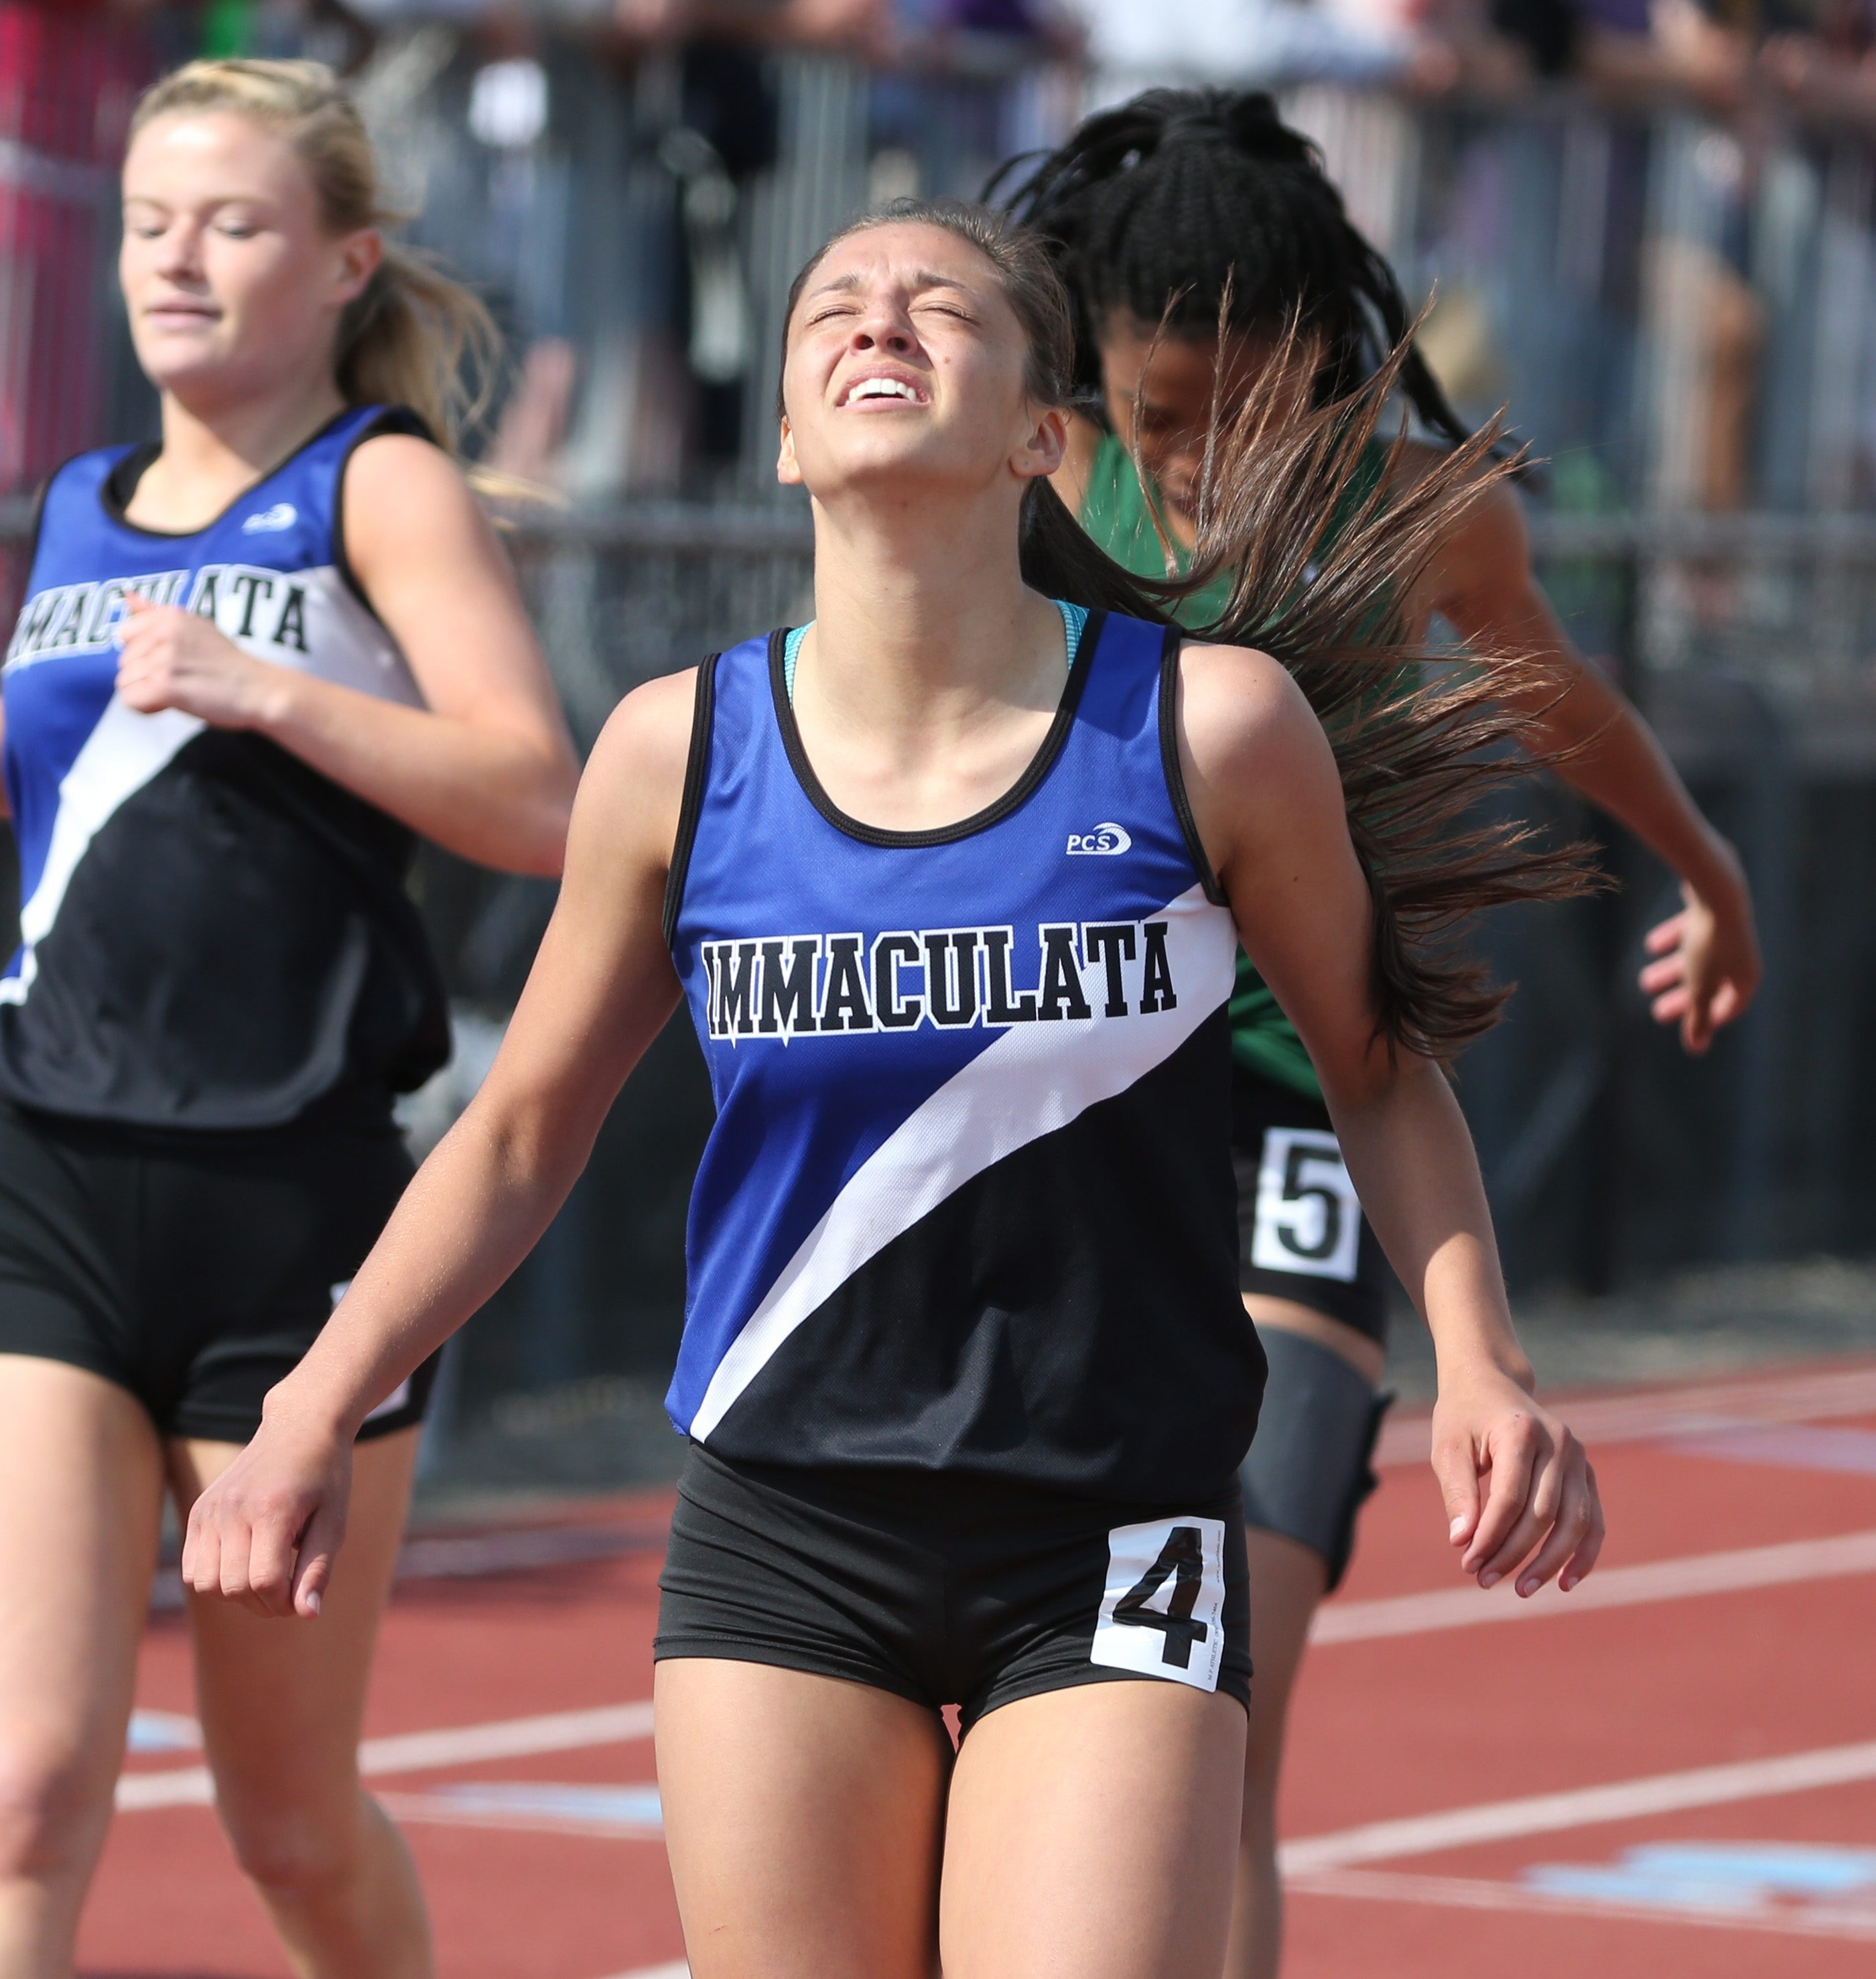 Immaculata's Emilee Chiavetta wins the 200m during the All-Catholic track at St. Francis High School  in Buffalo, NY on Sunday,May 22, 2016.  (James P. McCoy/ Buffalo News)